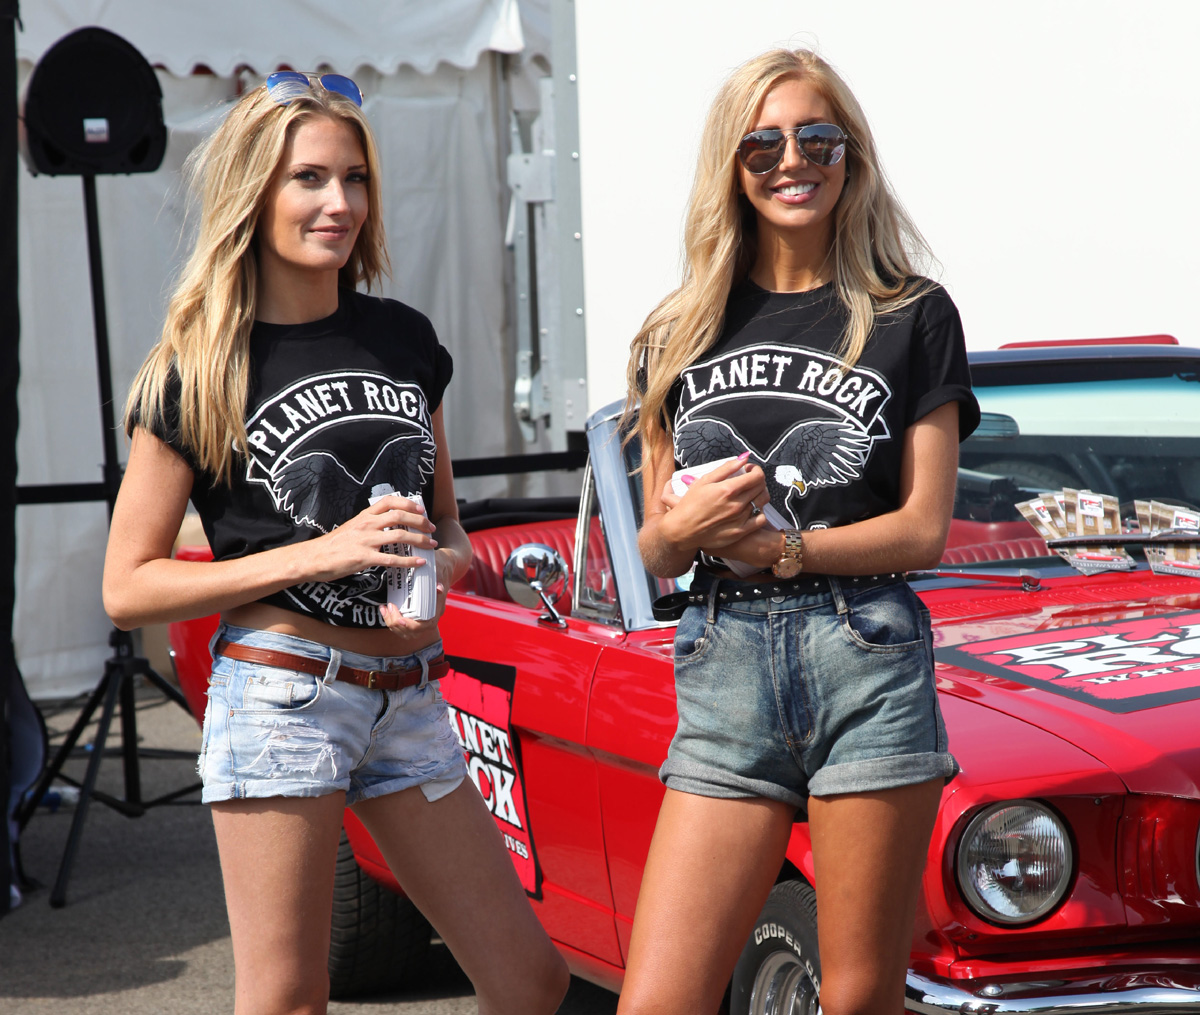 Beautiful promotional models posing for a photograph during an event